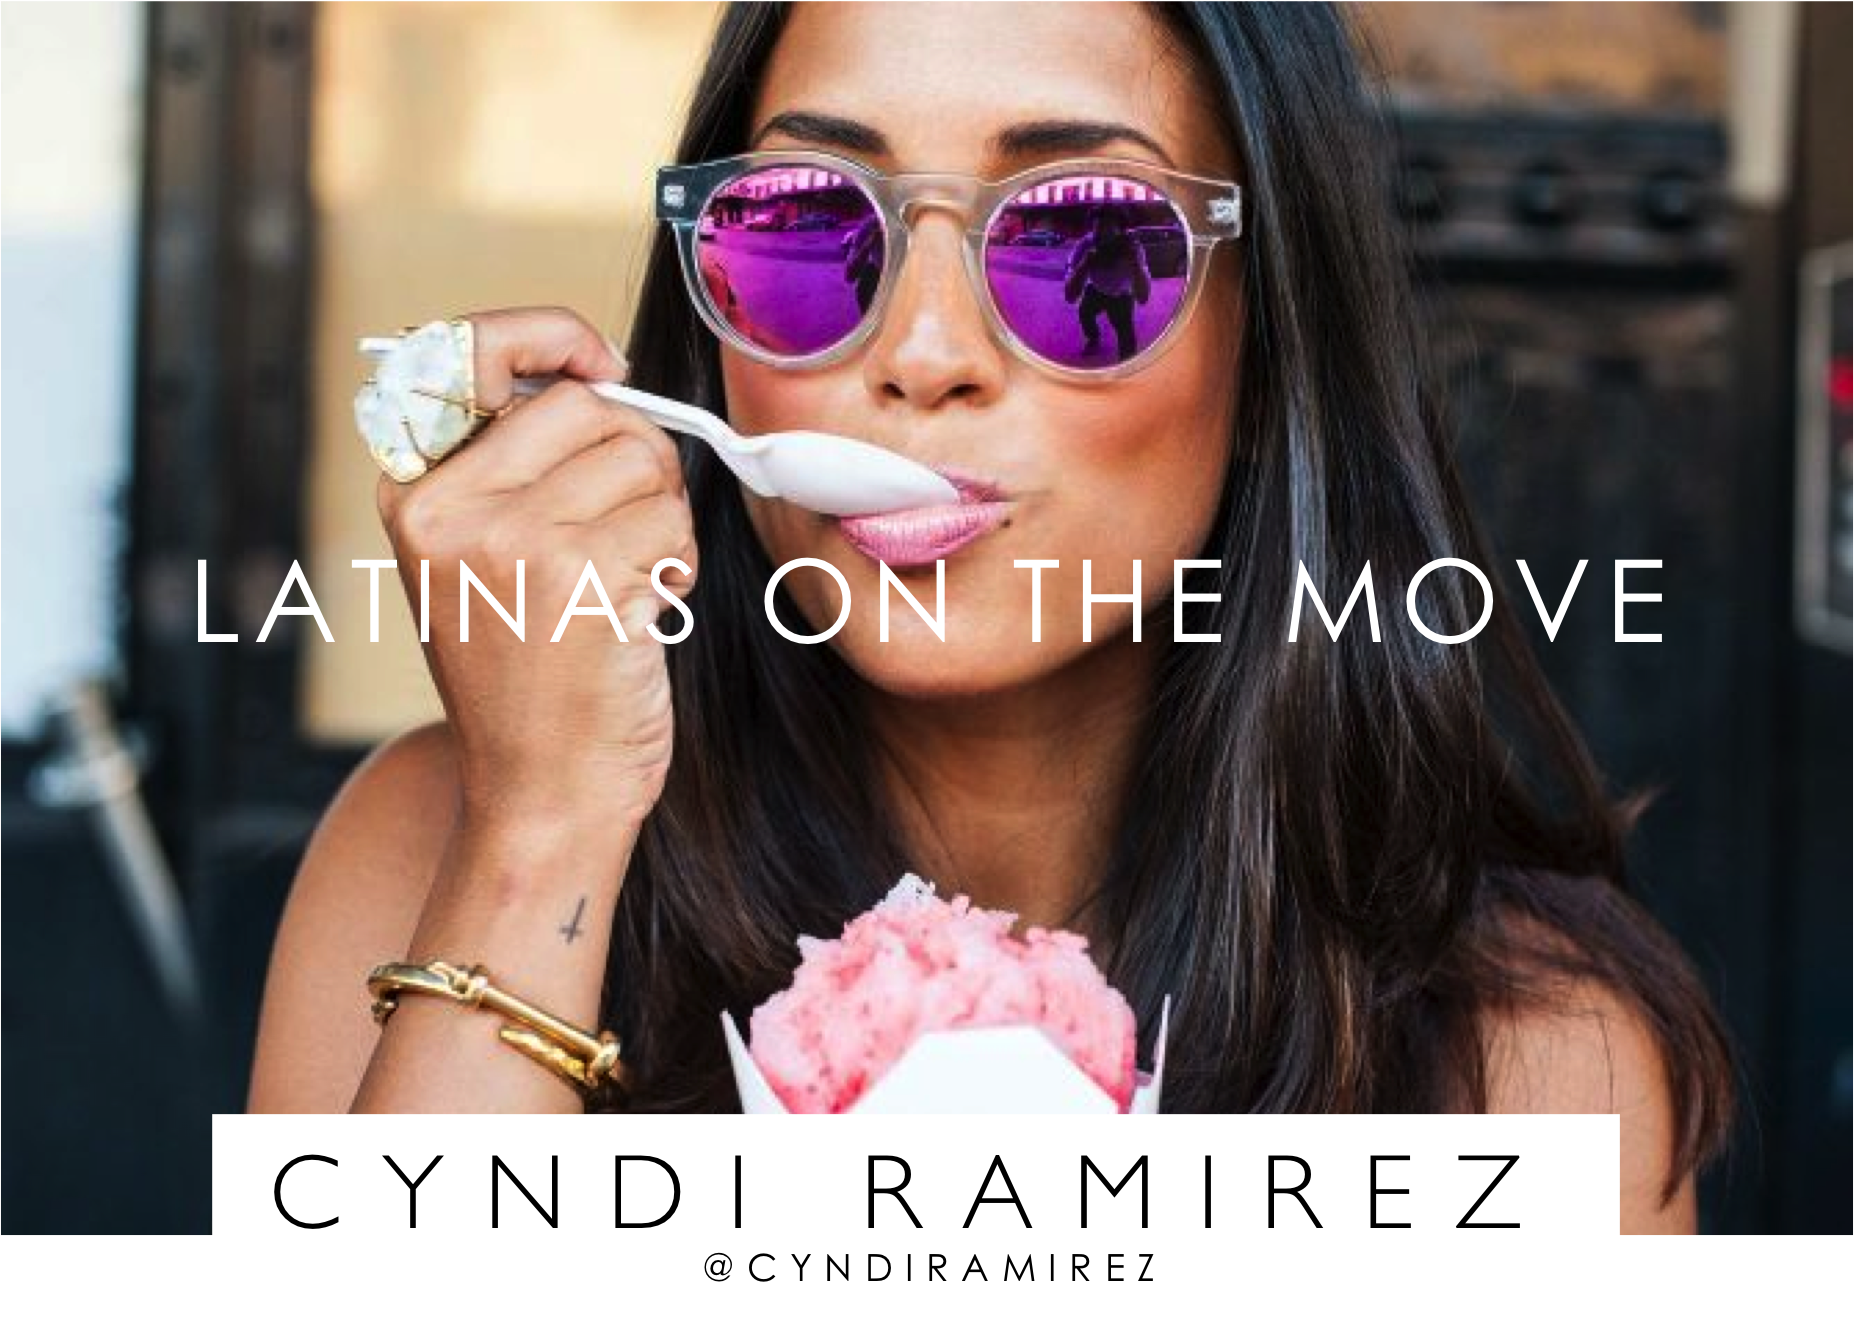 LATINAS ON THE MOVE CYNDI RAMIREZ